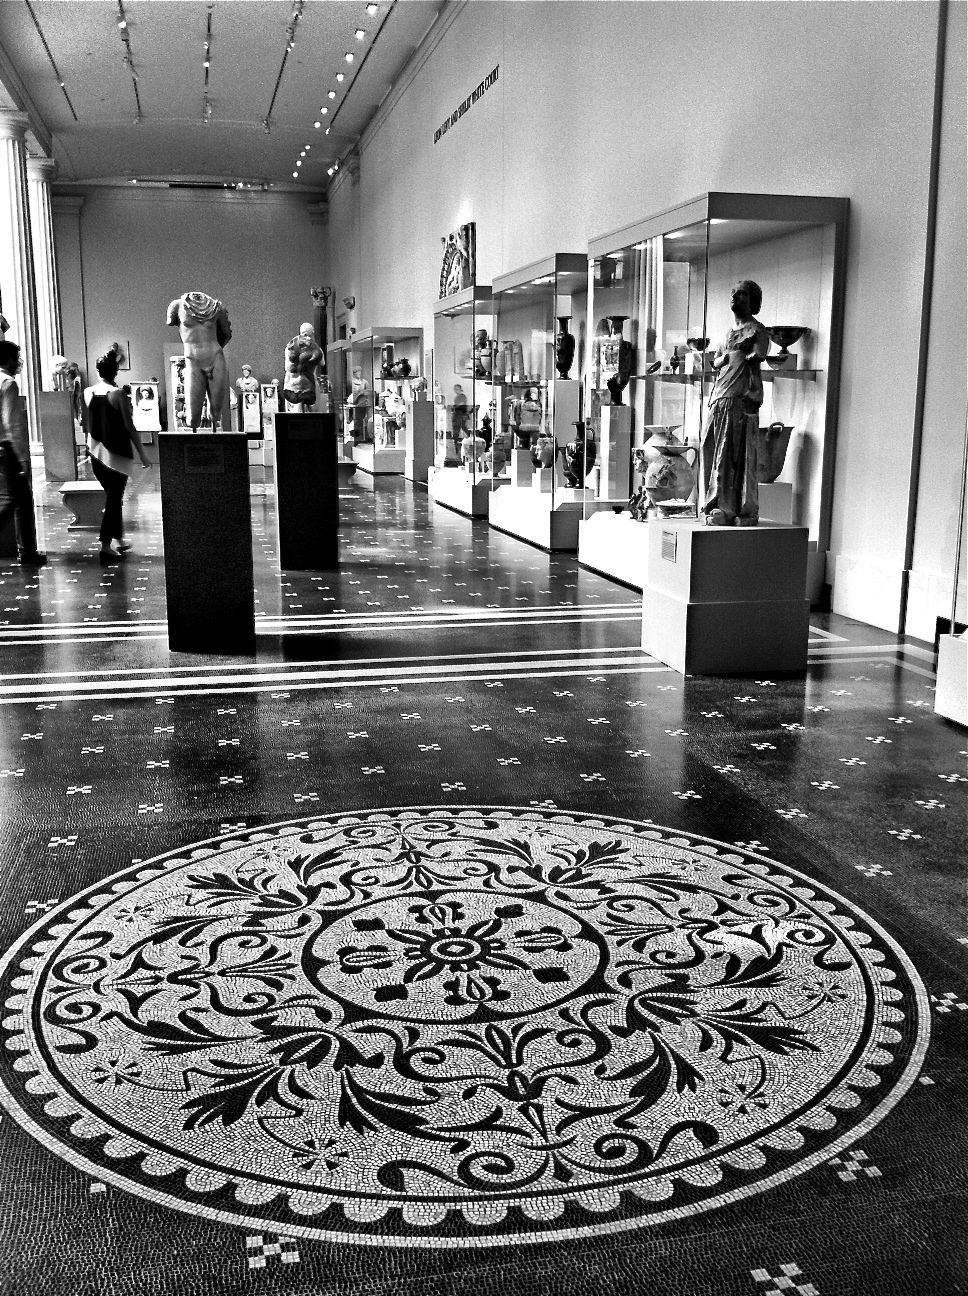 NYC        NYC  Black and White Mosaic Tile Floor of the Greek and Roman     Black and White Mosaic Tile Floor of the Greek and Roman Galleries in the  Met